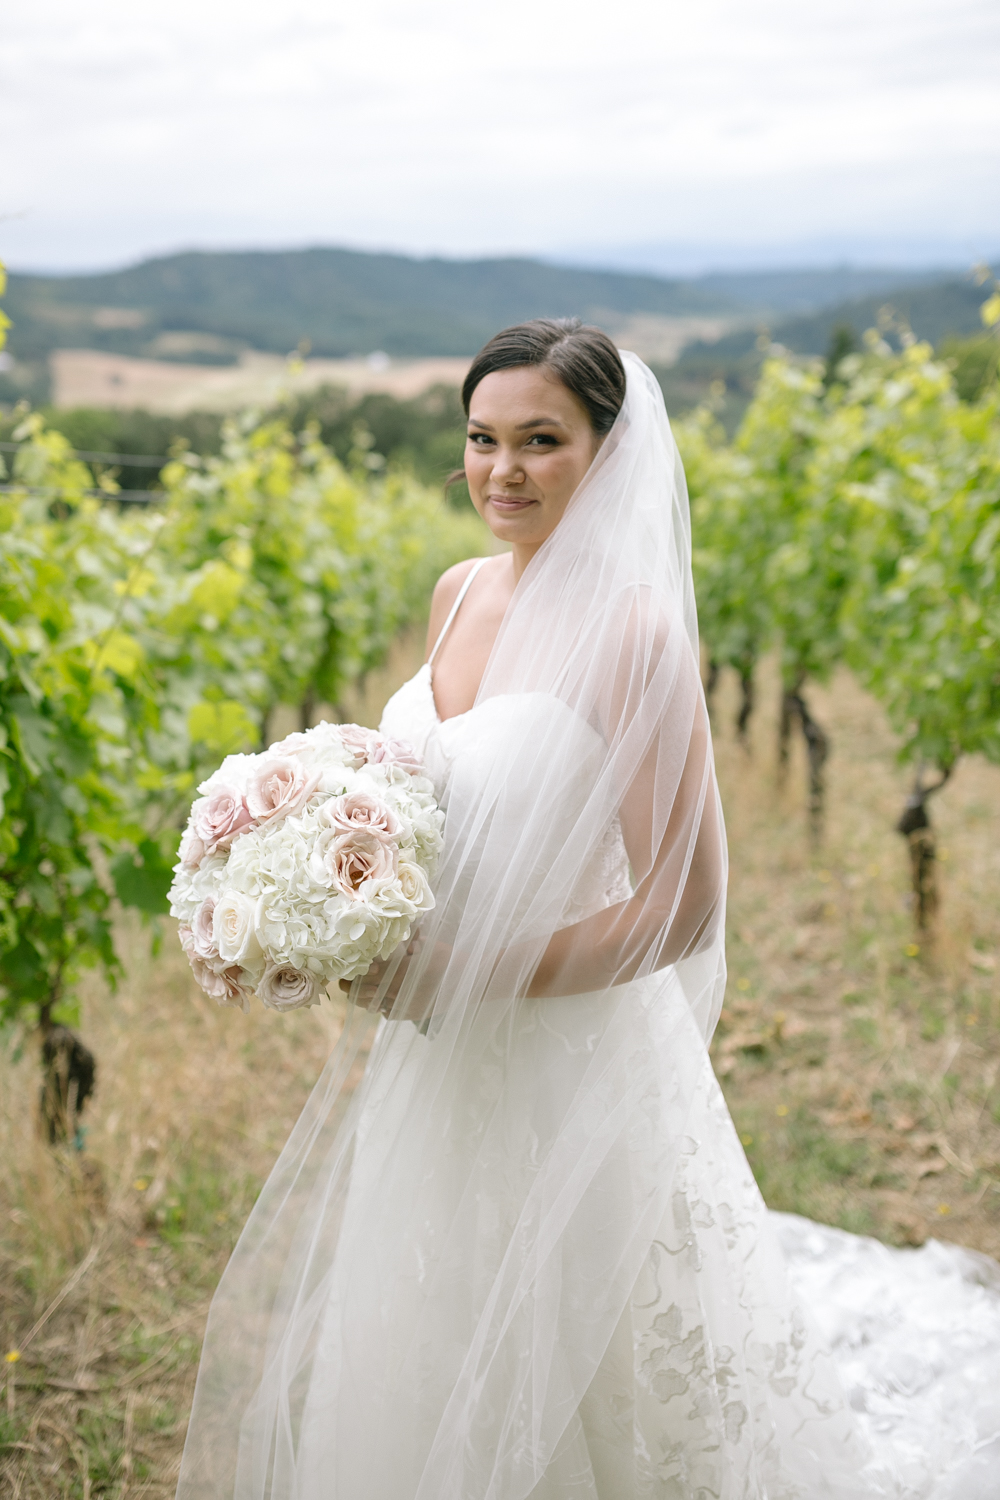 Youngberg Hill Vineyard Wedding in Wine Country Oregon - Corrie Mick Photography-73.jpg